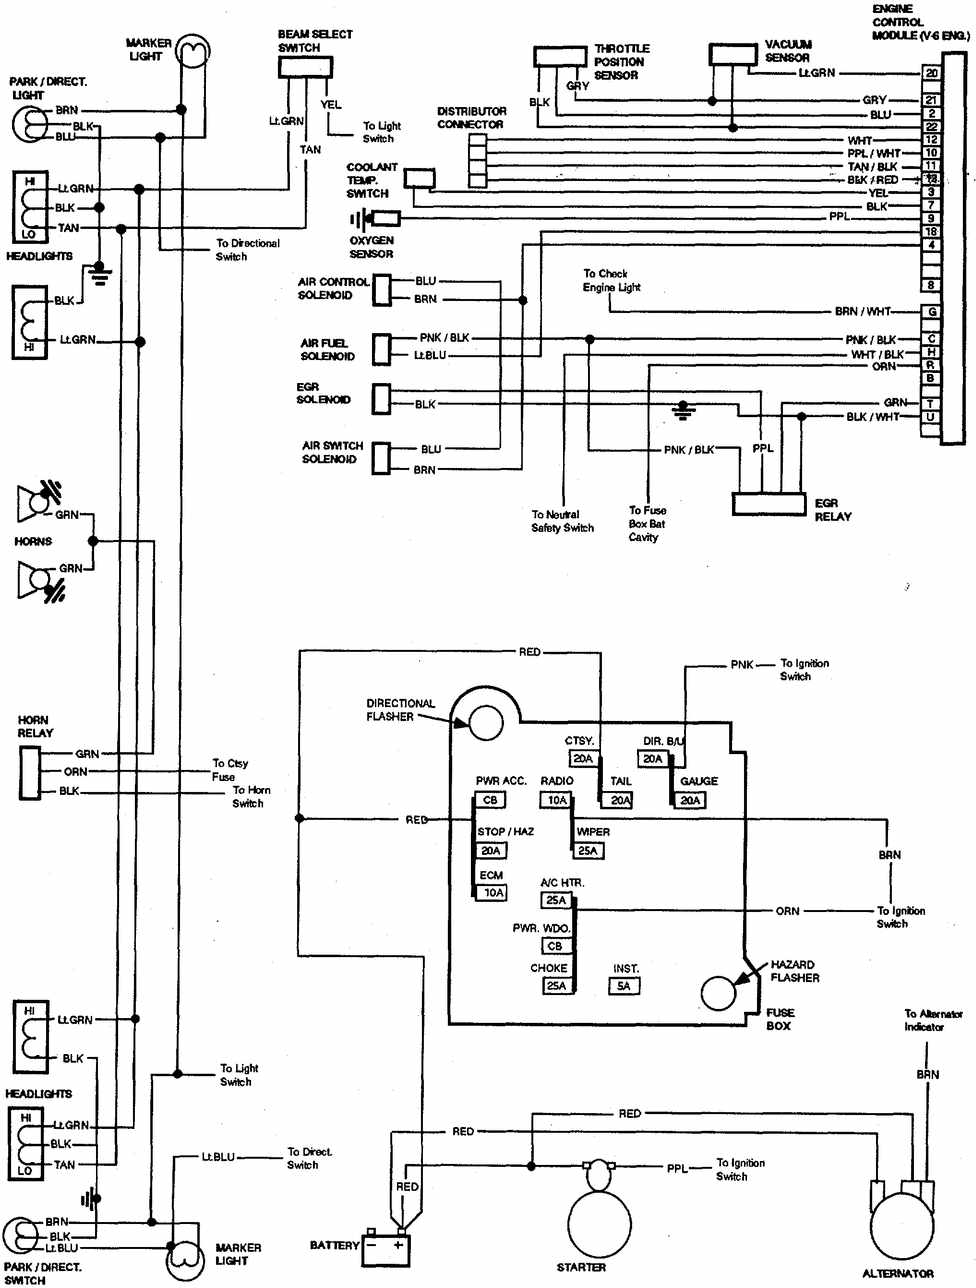 1993 chevy c3500 wiring diagram